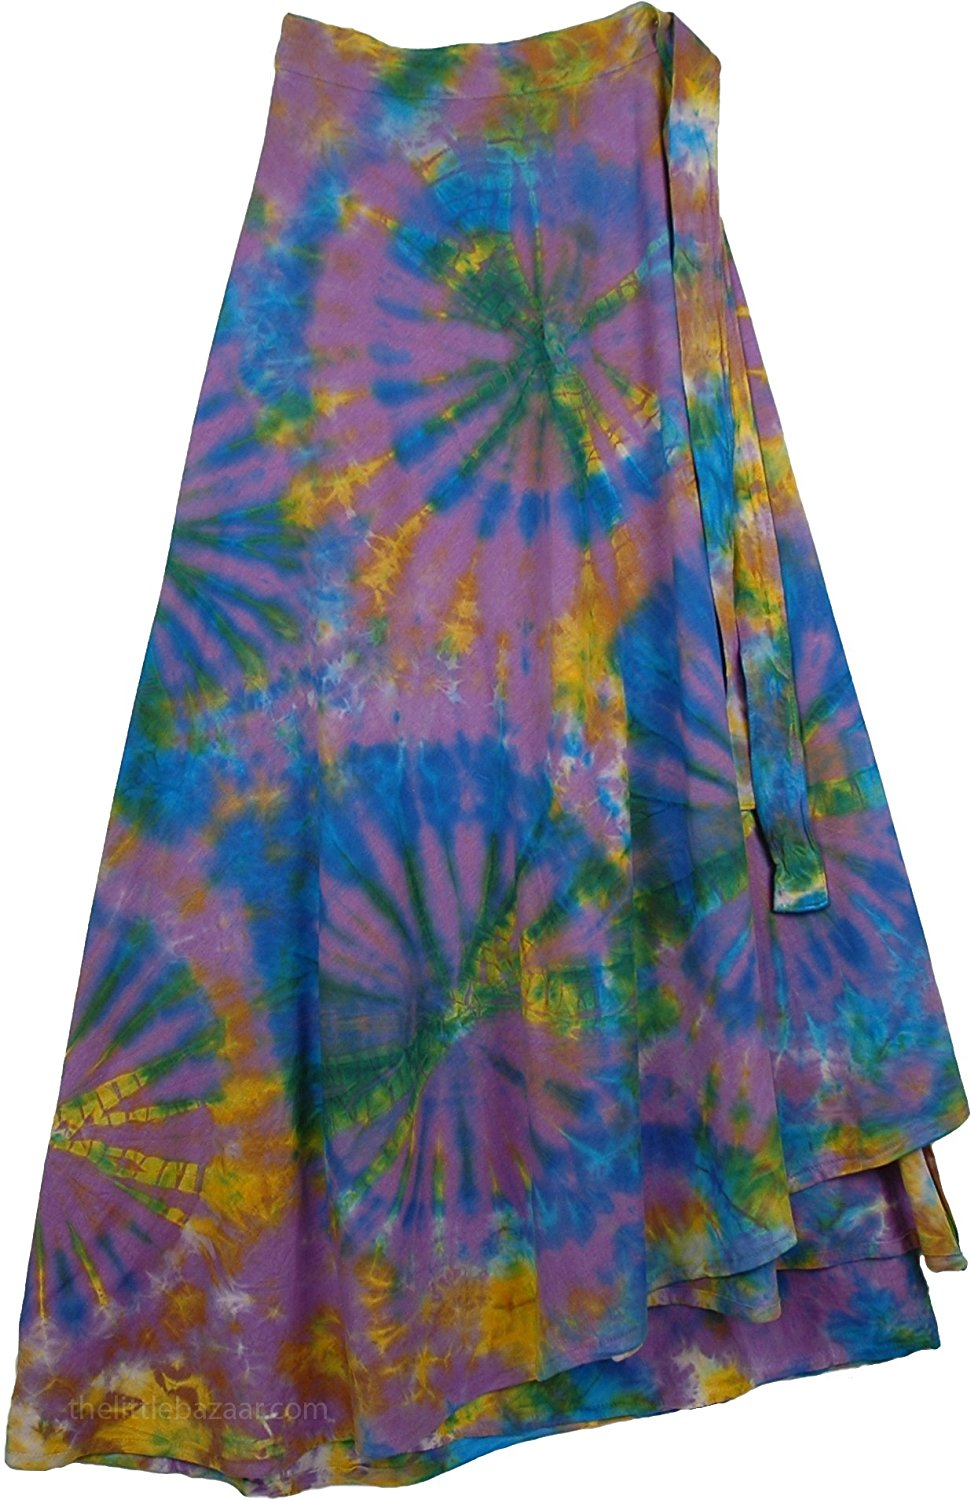 TLB - Pacifika Wrap Tie Dye Boho Long Skirt